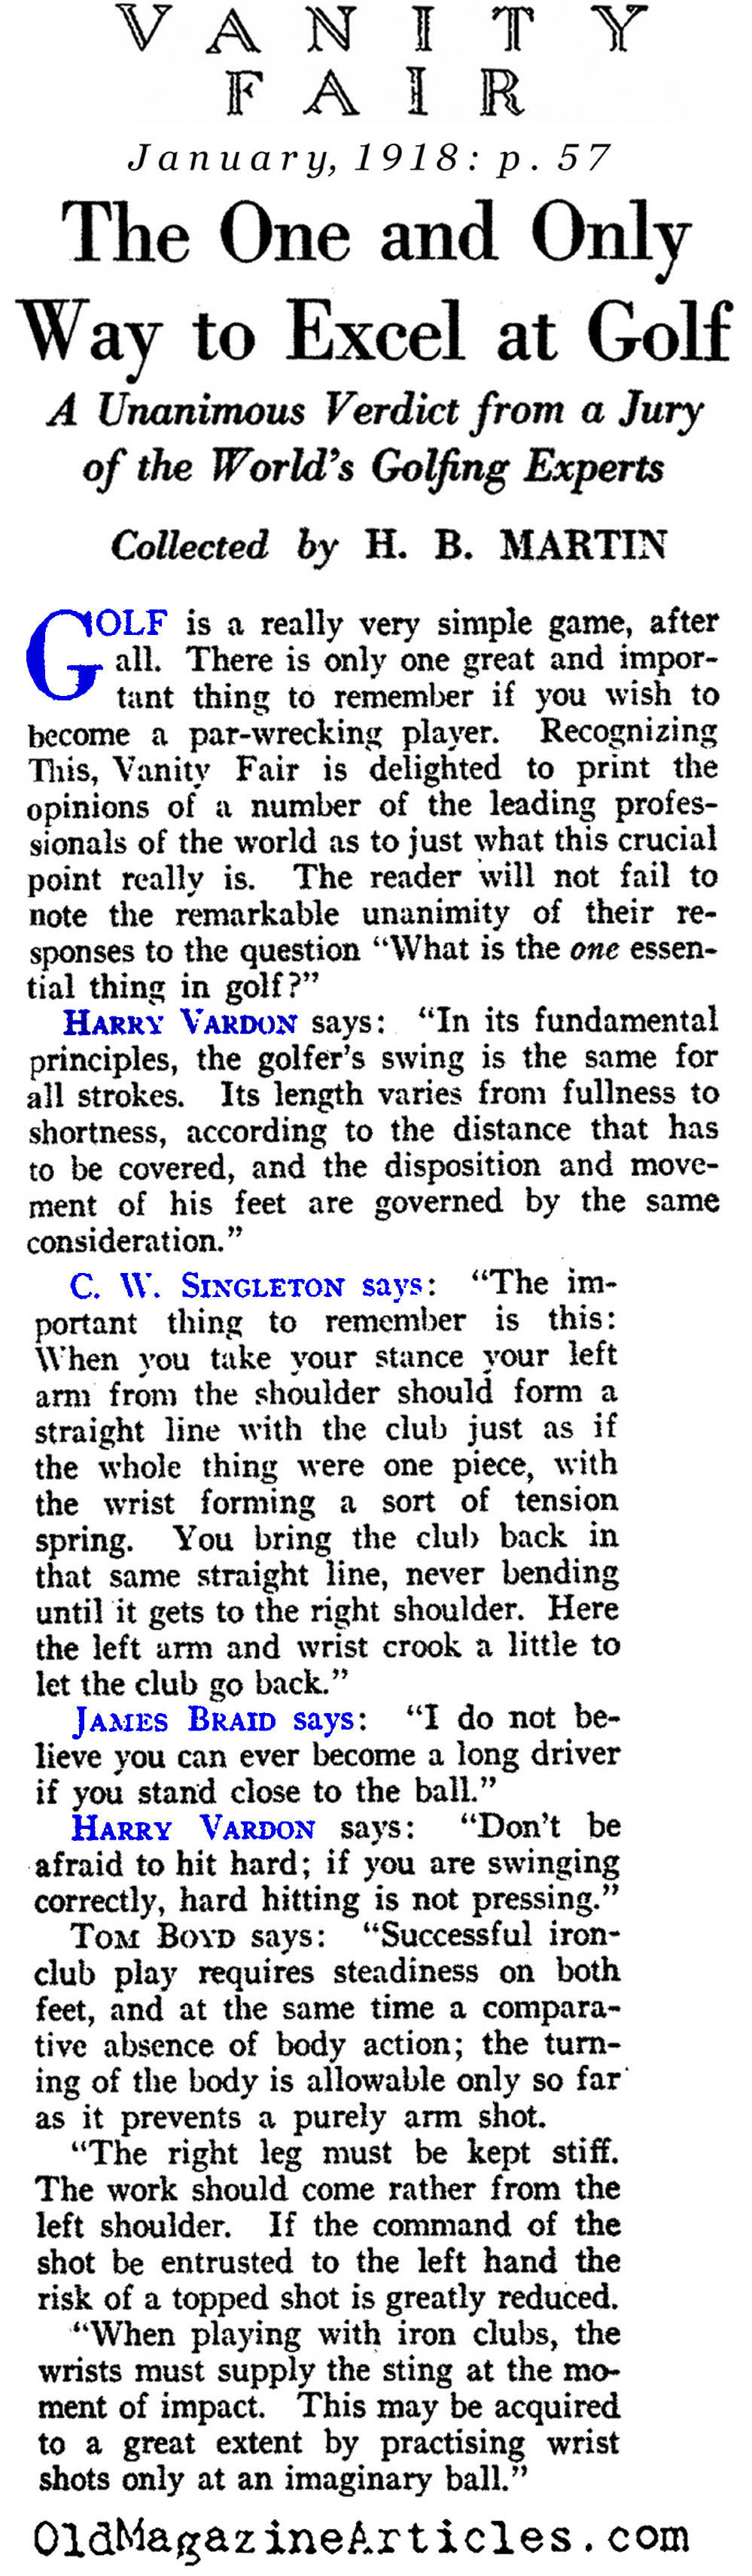 The One Essential Thing in Golf (Vanity Fair Magazine, 1918)